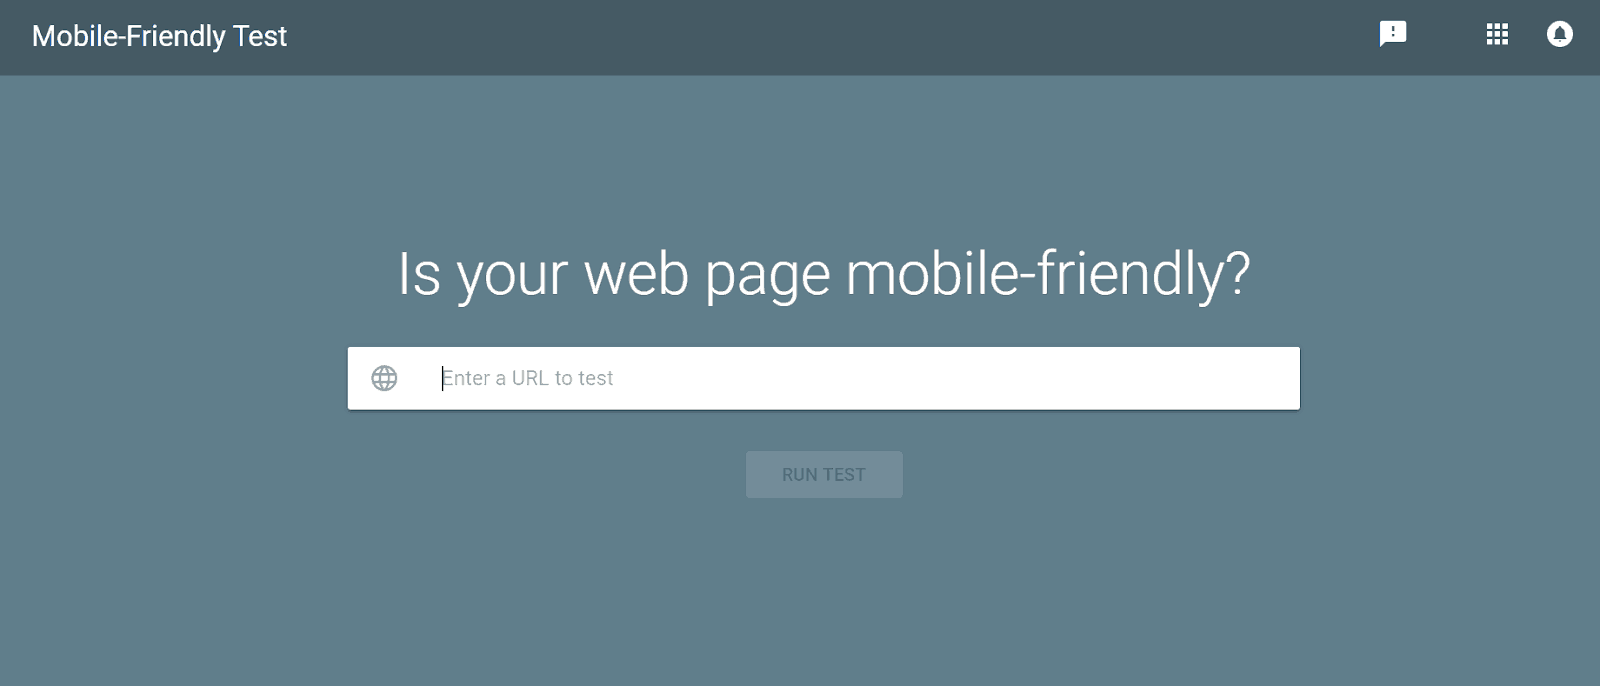 Mobile Friendly Test Mobile-First Indexing